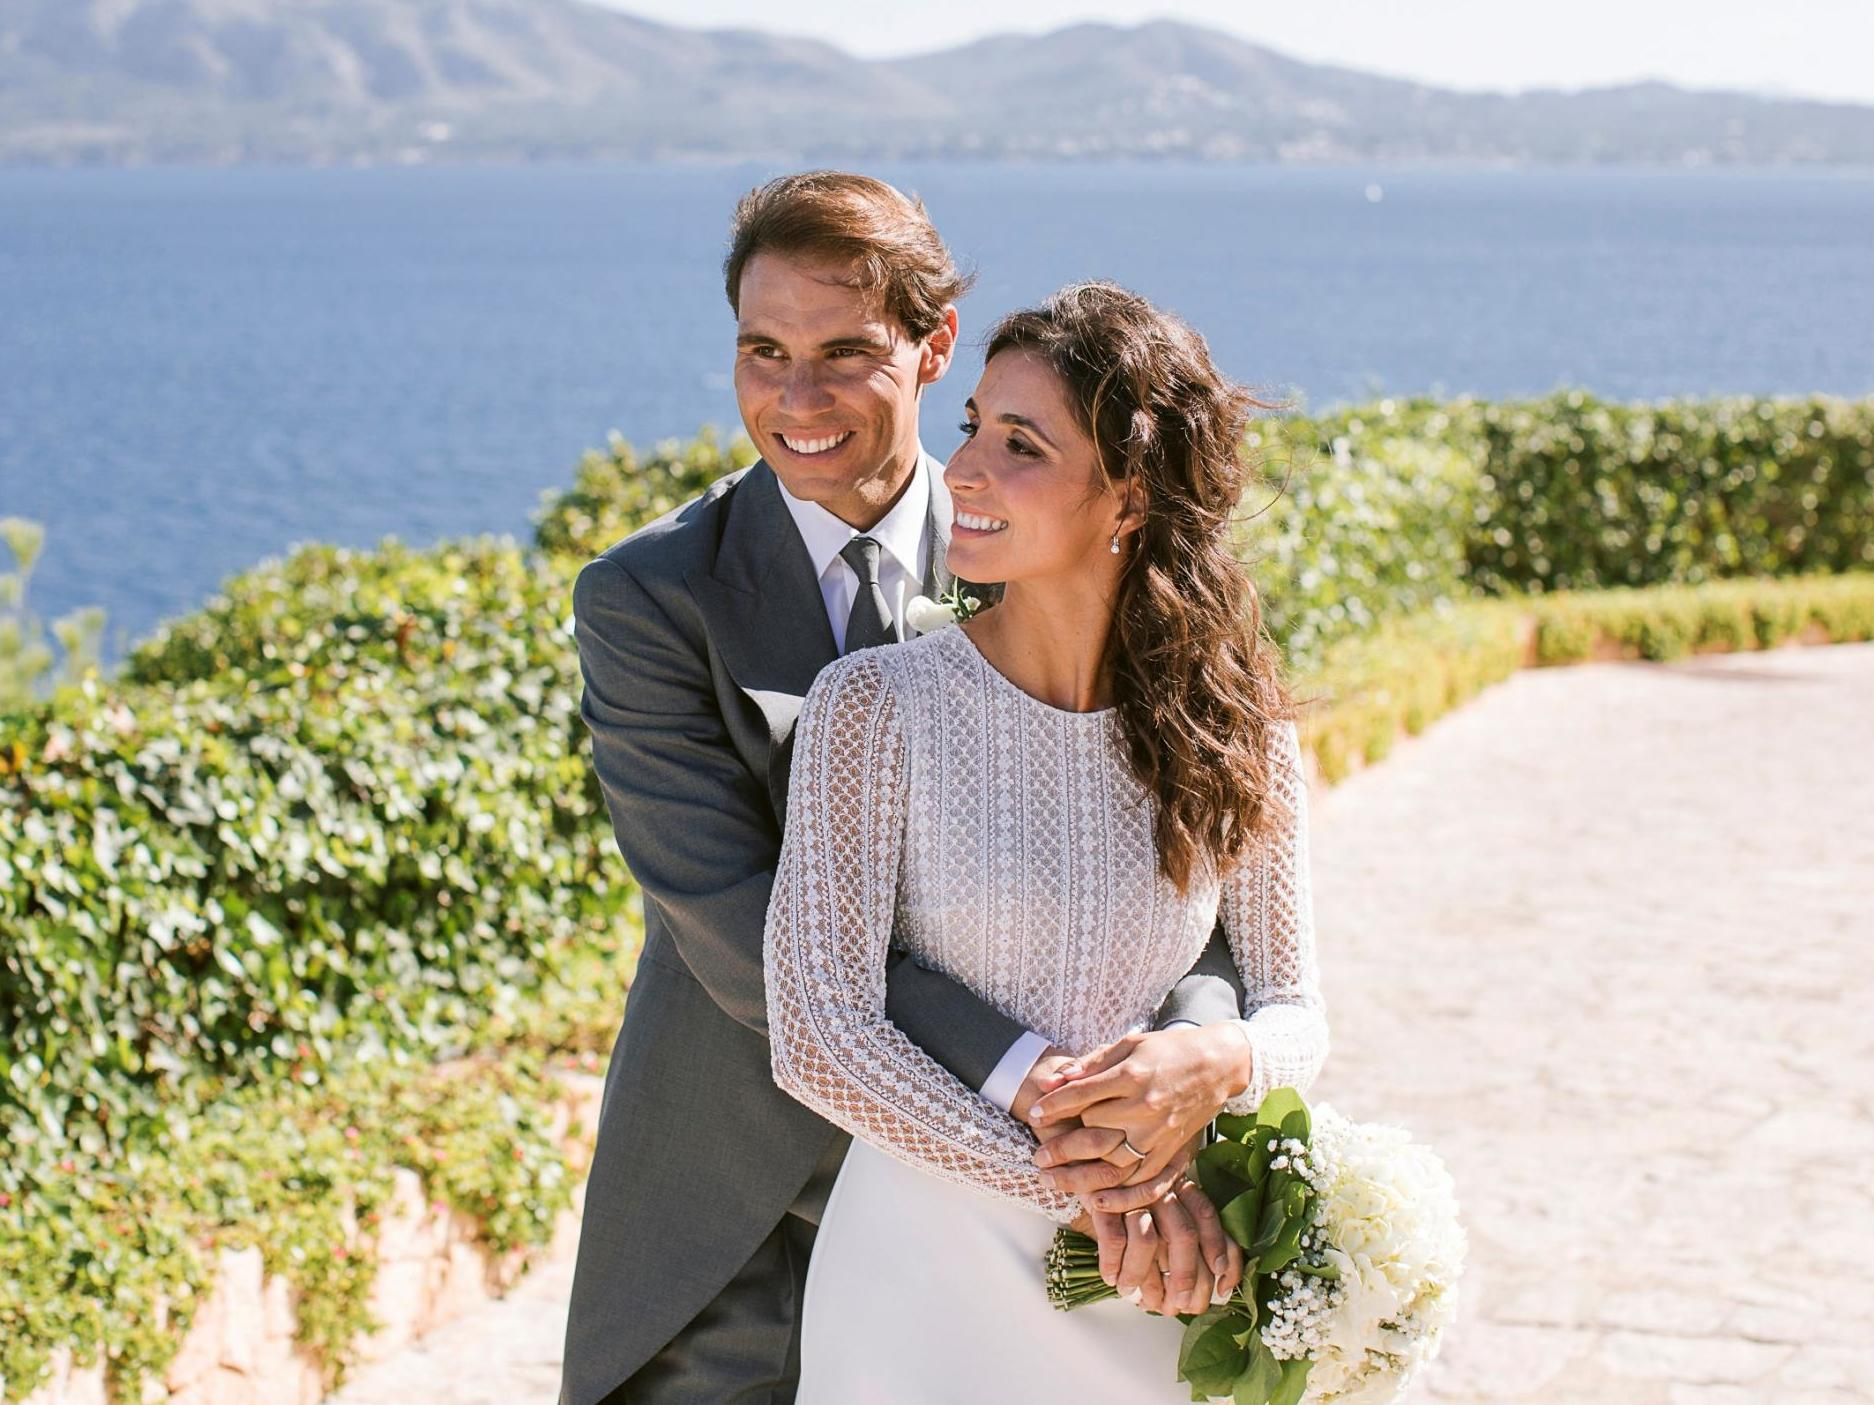 Photos from Rafael Nadal's wedding to Mery Perelló released